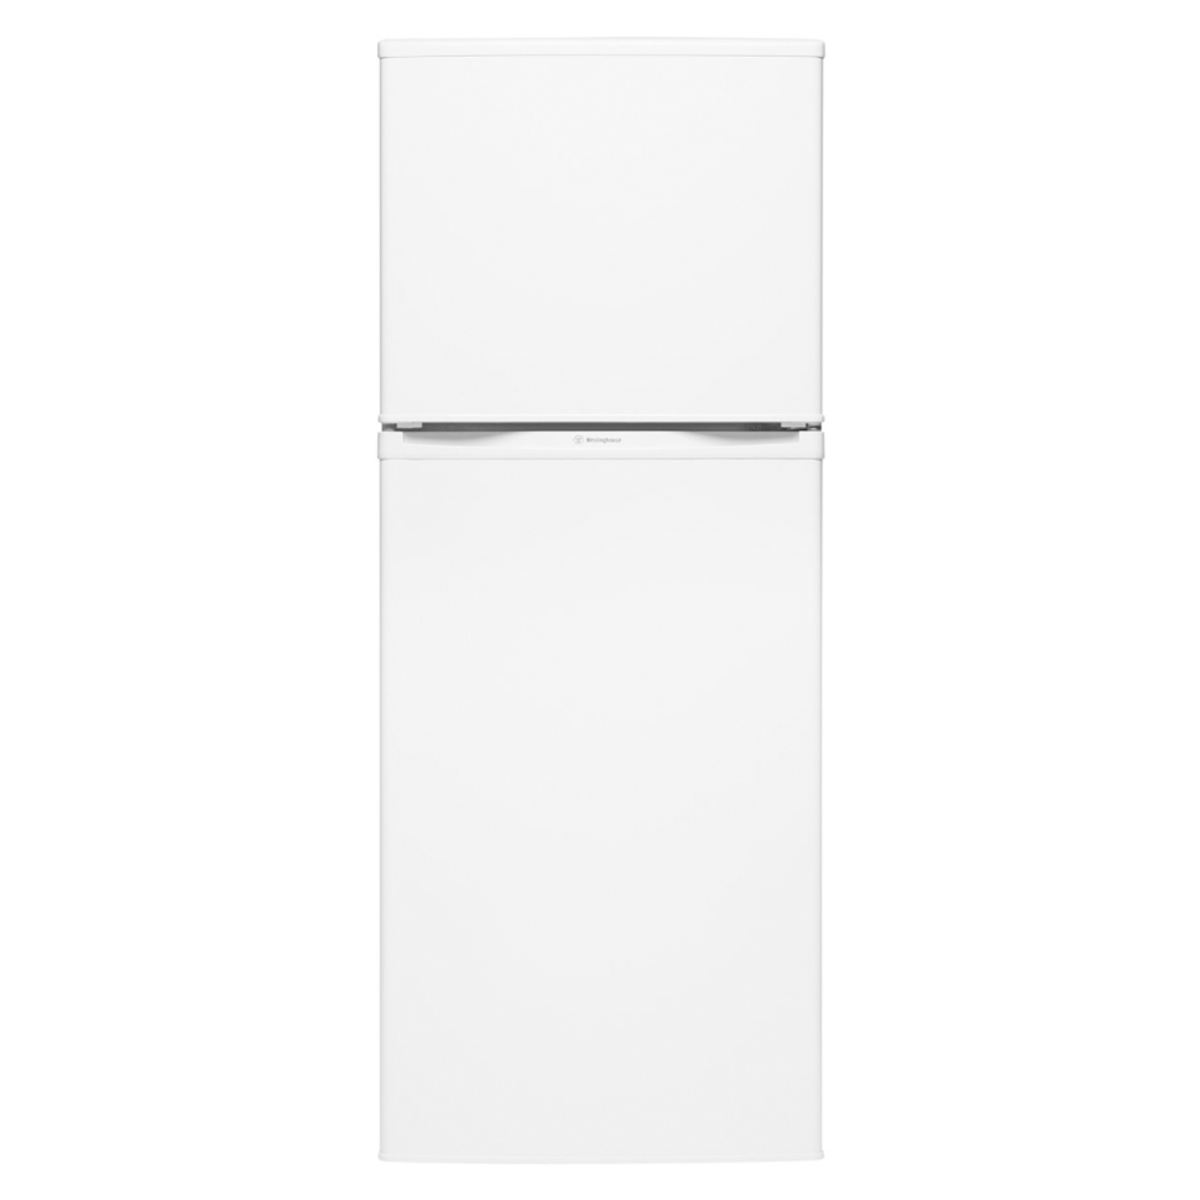 Westinghouse WTM2000WCR 200L Top Mount Fridge